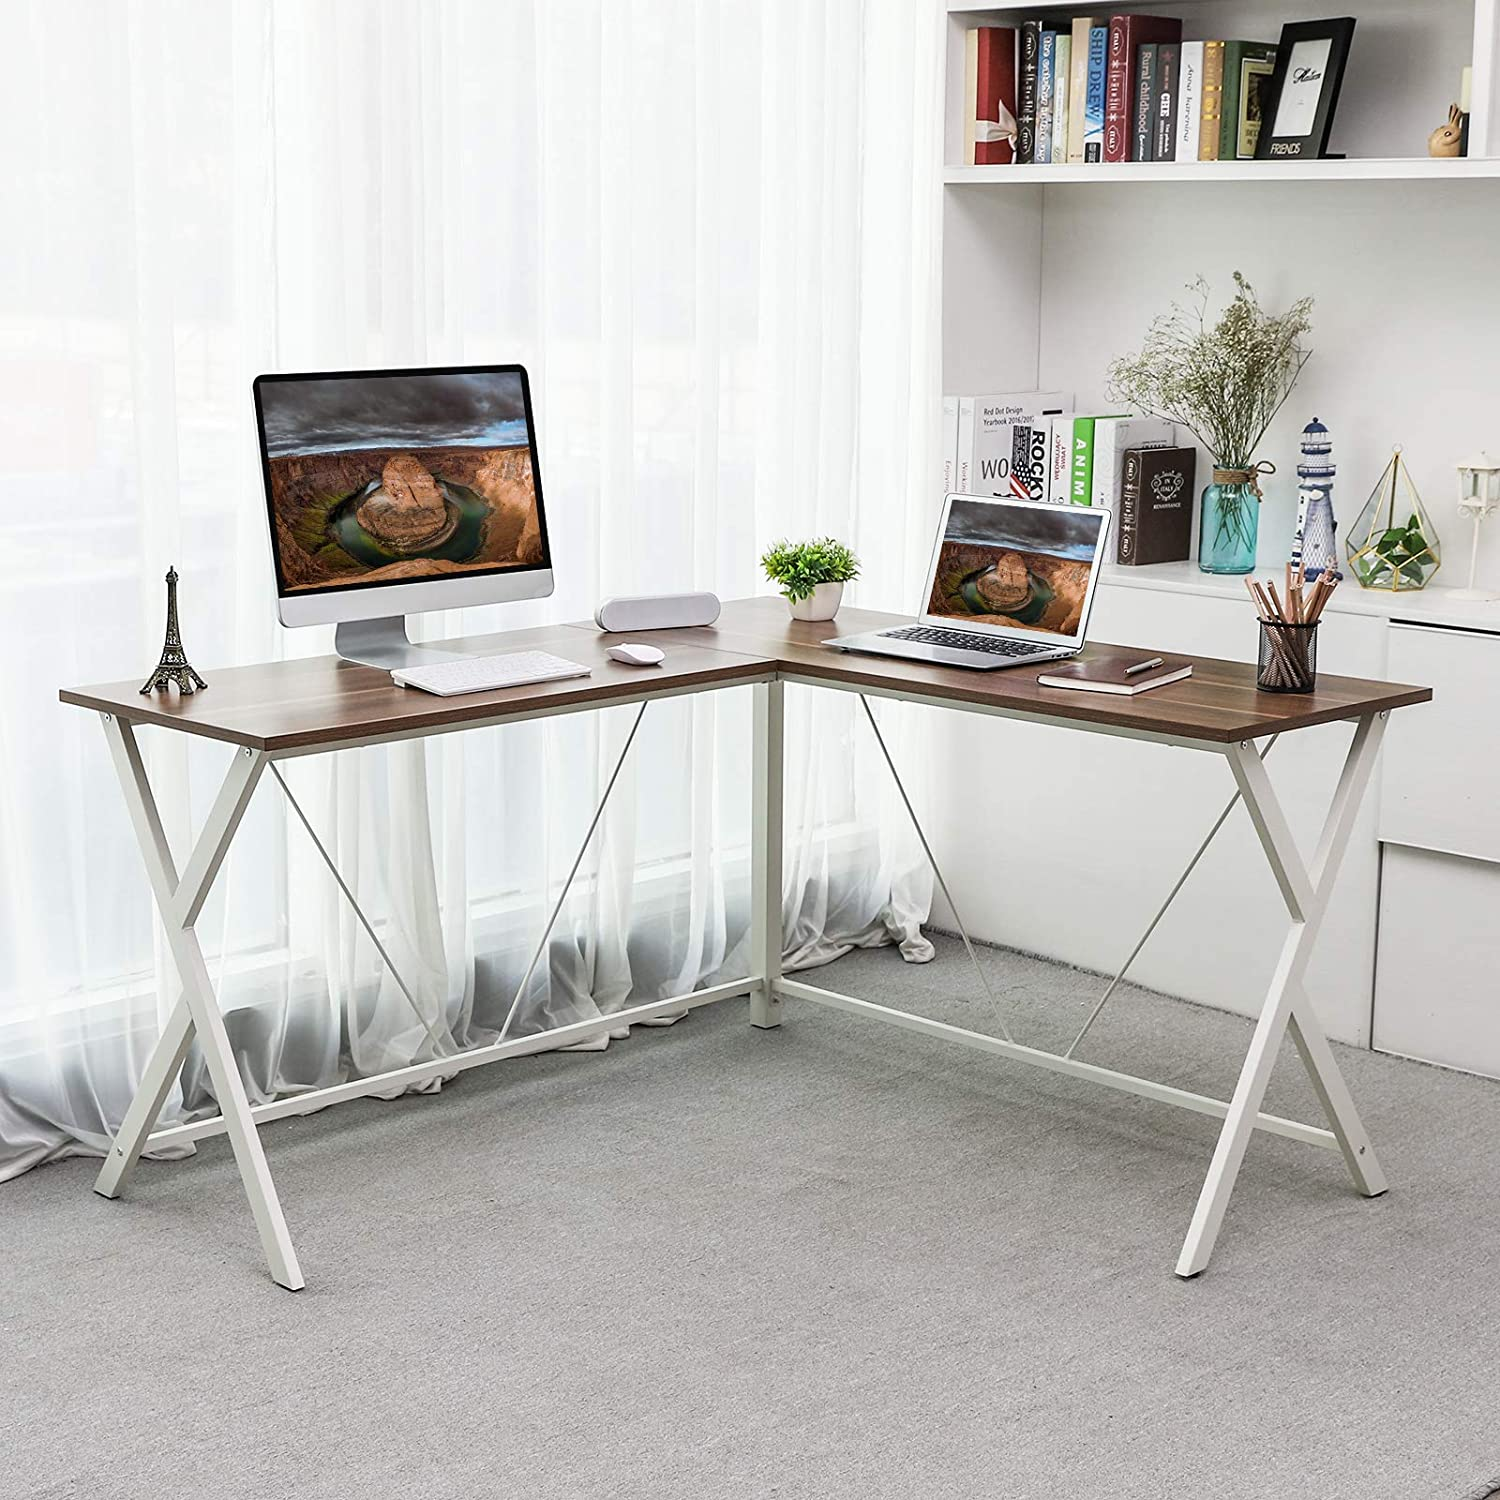 Shop hawkinswoodshop.com for discounted solid wood & metal modern, traditional, contemporary, custom & farmhouse furniture including our Ryan White Metal Base L-Shaped Wood Desk. Ask about our free nationwide freight delivery or assembly services today.